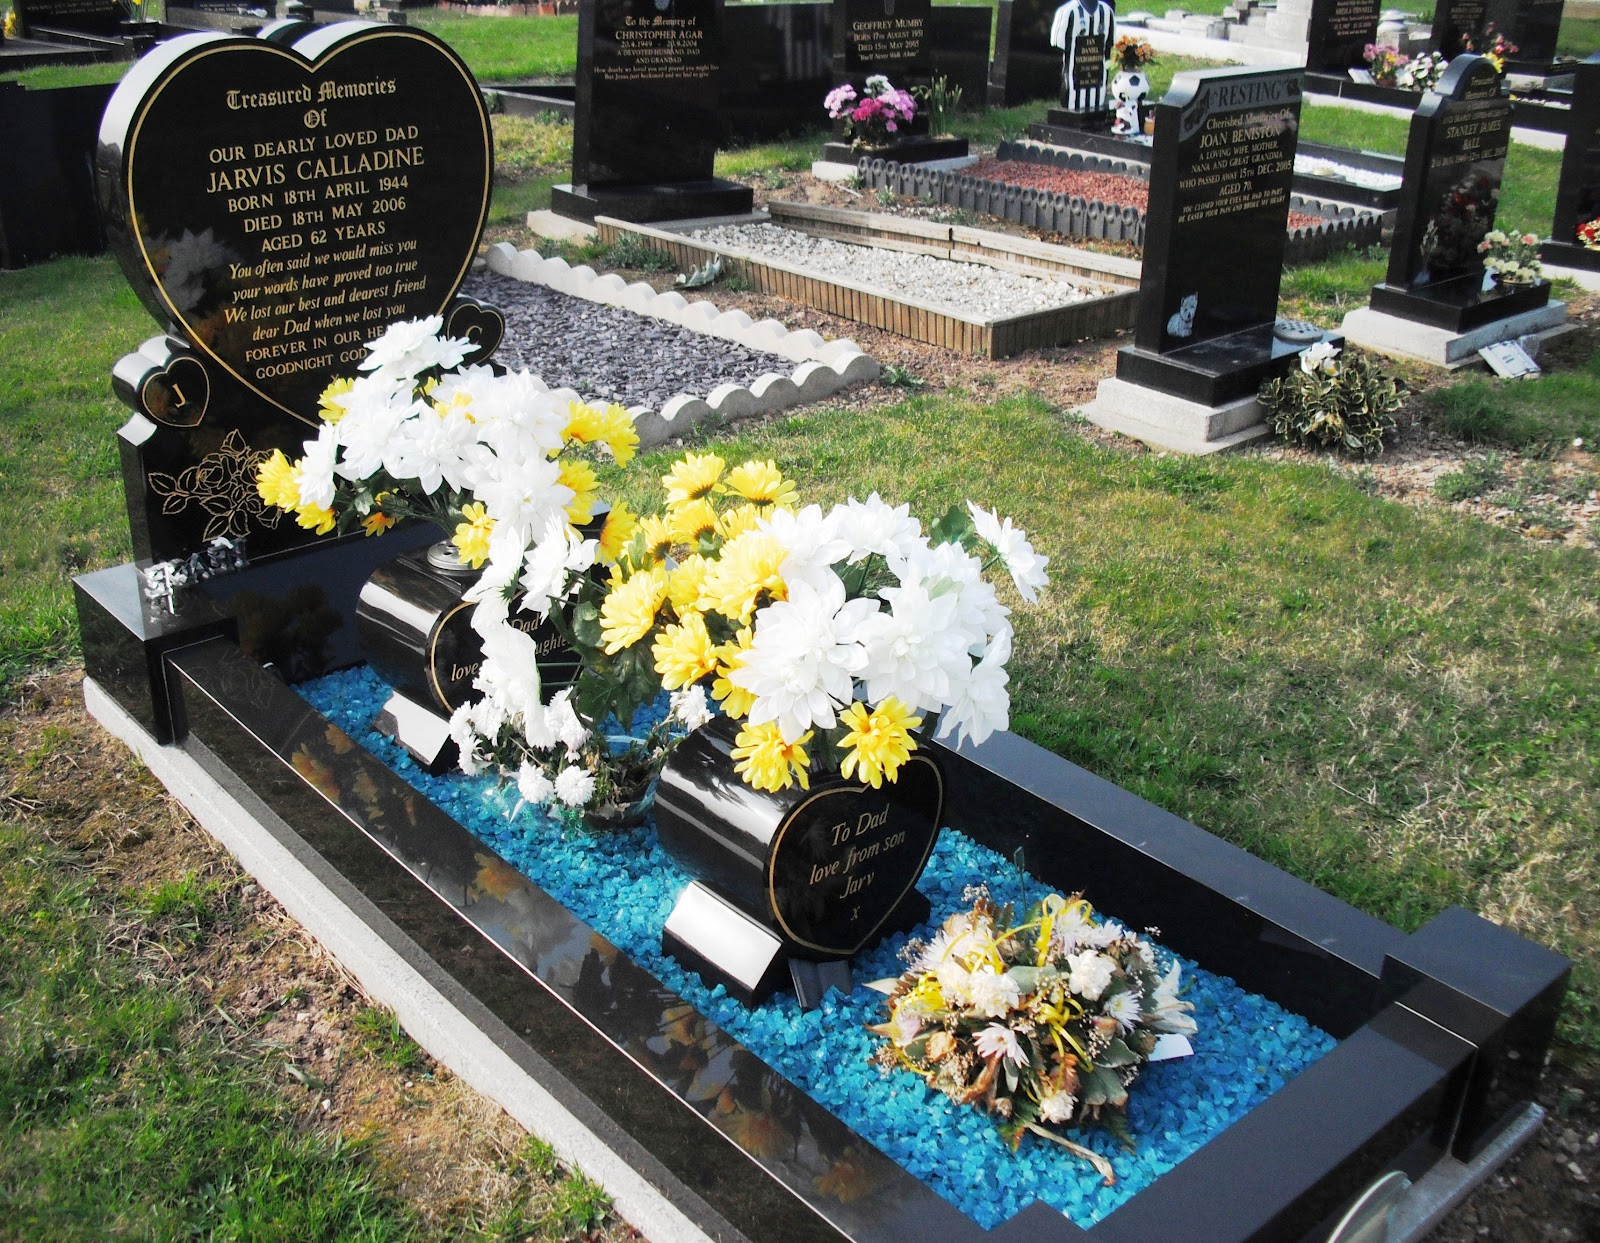 Life after money keadby to crowle and back for Grave decorations ideas